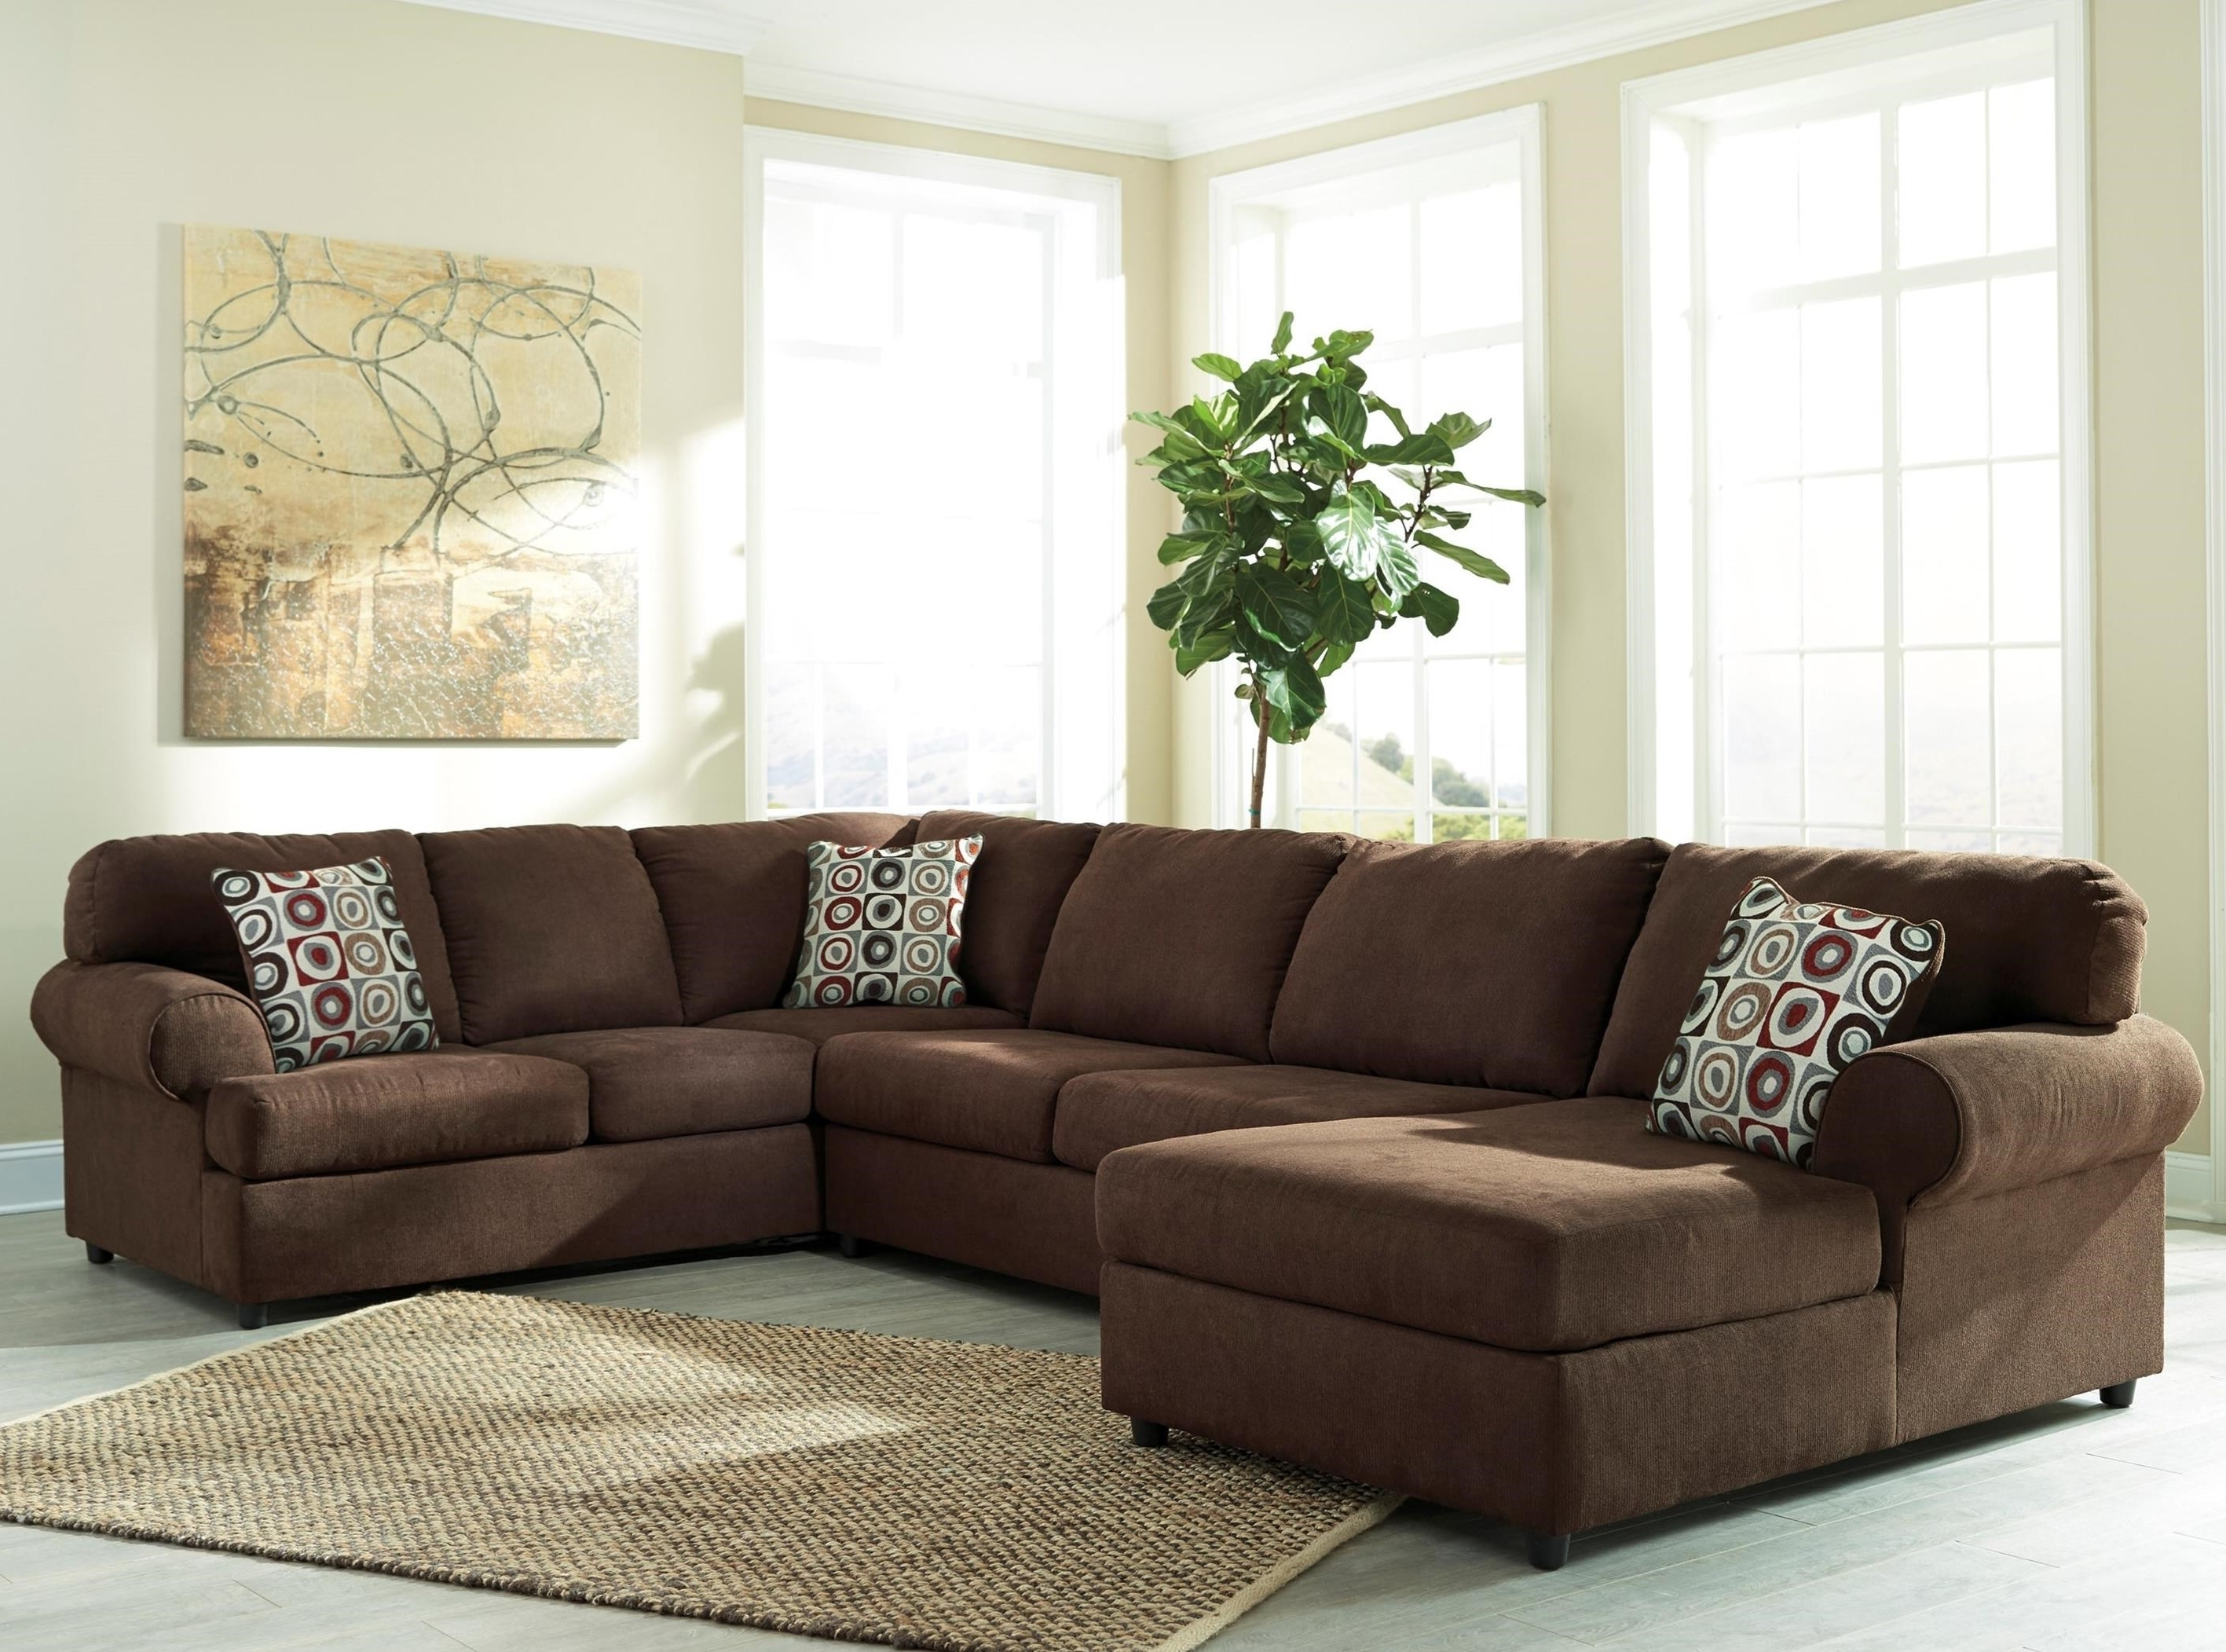 Ashley Furniture Chaise Sofas With Regard To 2018 Signature Designashley Jayceon 3 Piece Sectional With Left (View 13 of 15)